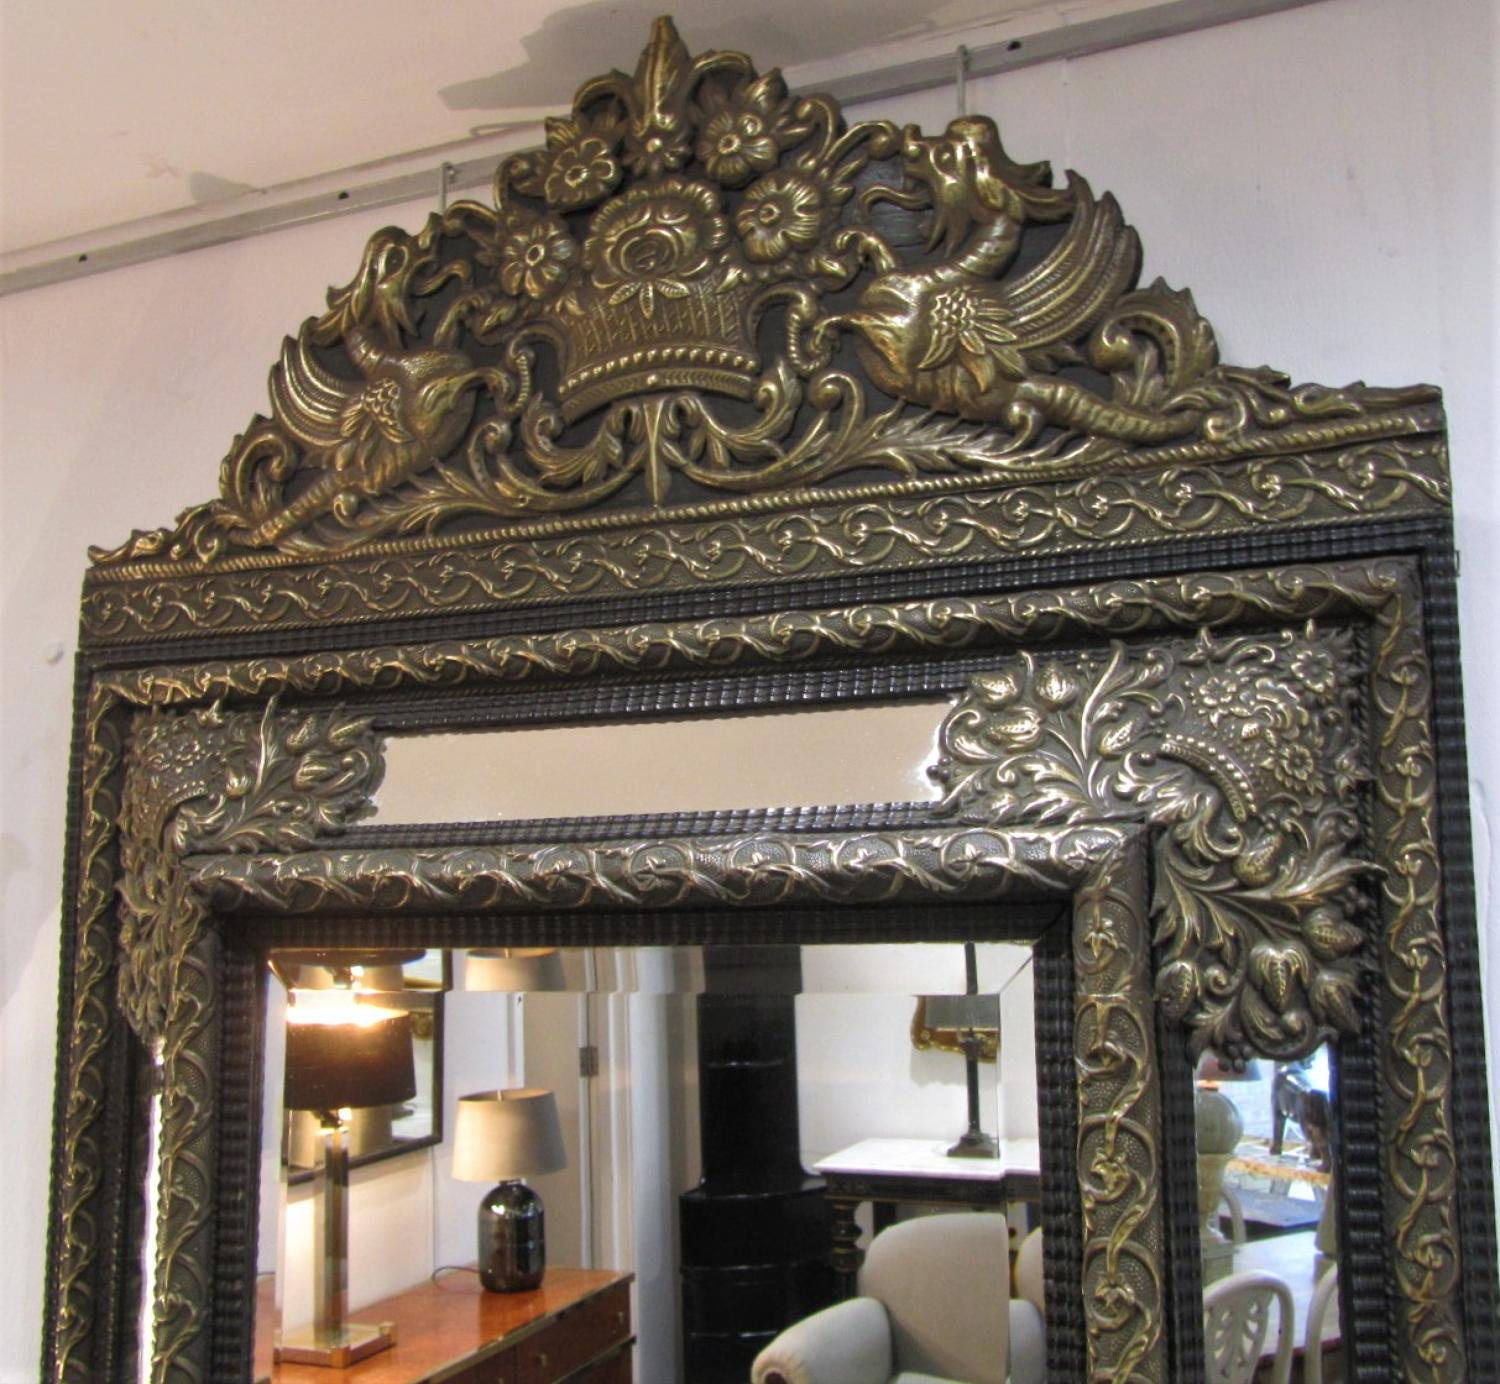 A dutch baroque repoussee mirror in mirrors for Dutch baroque architecture